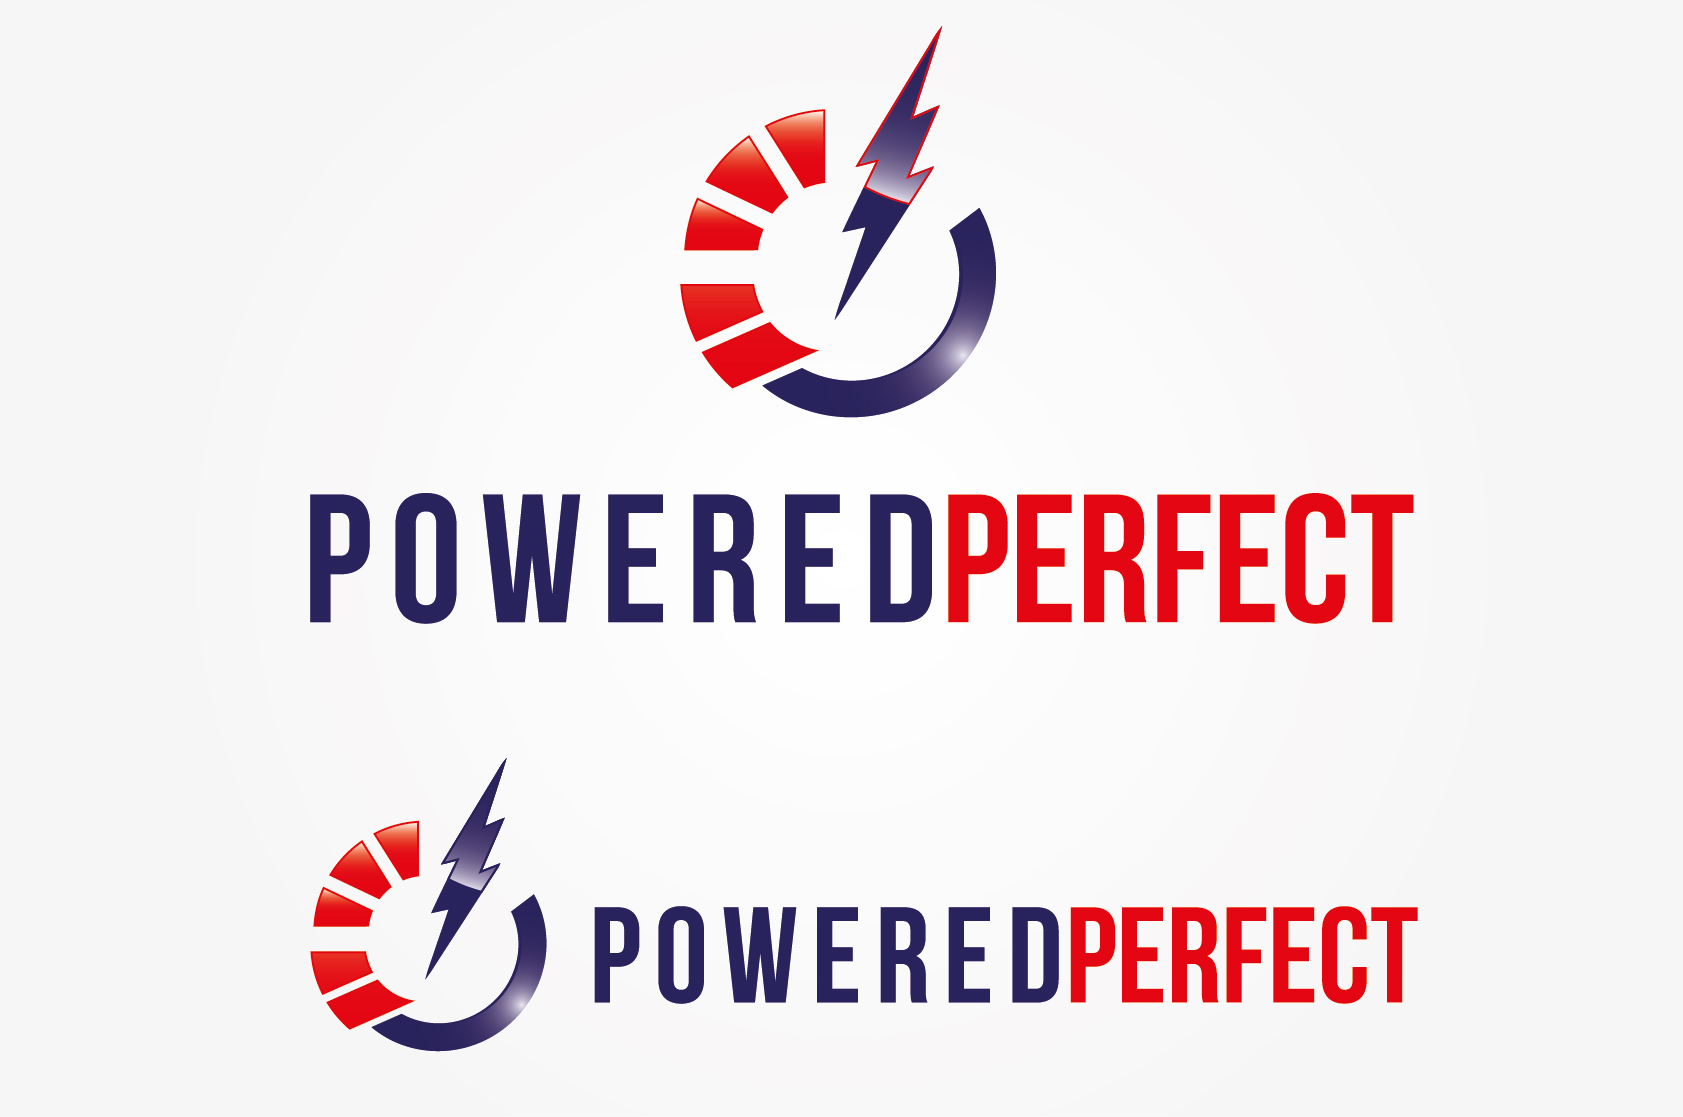 Logo Design by VENTSISLAV KOVACHEV - Entry No. 8 in the Logo Design Contest Captivating Logo Design for Powered Perfect.